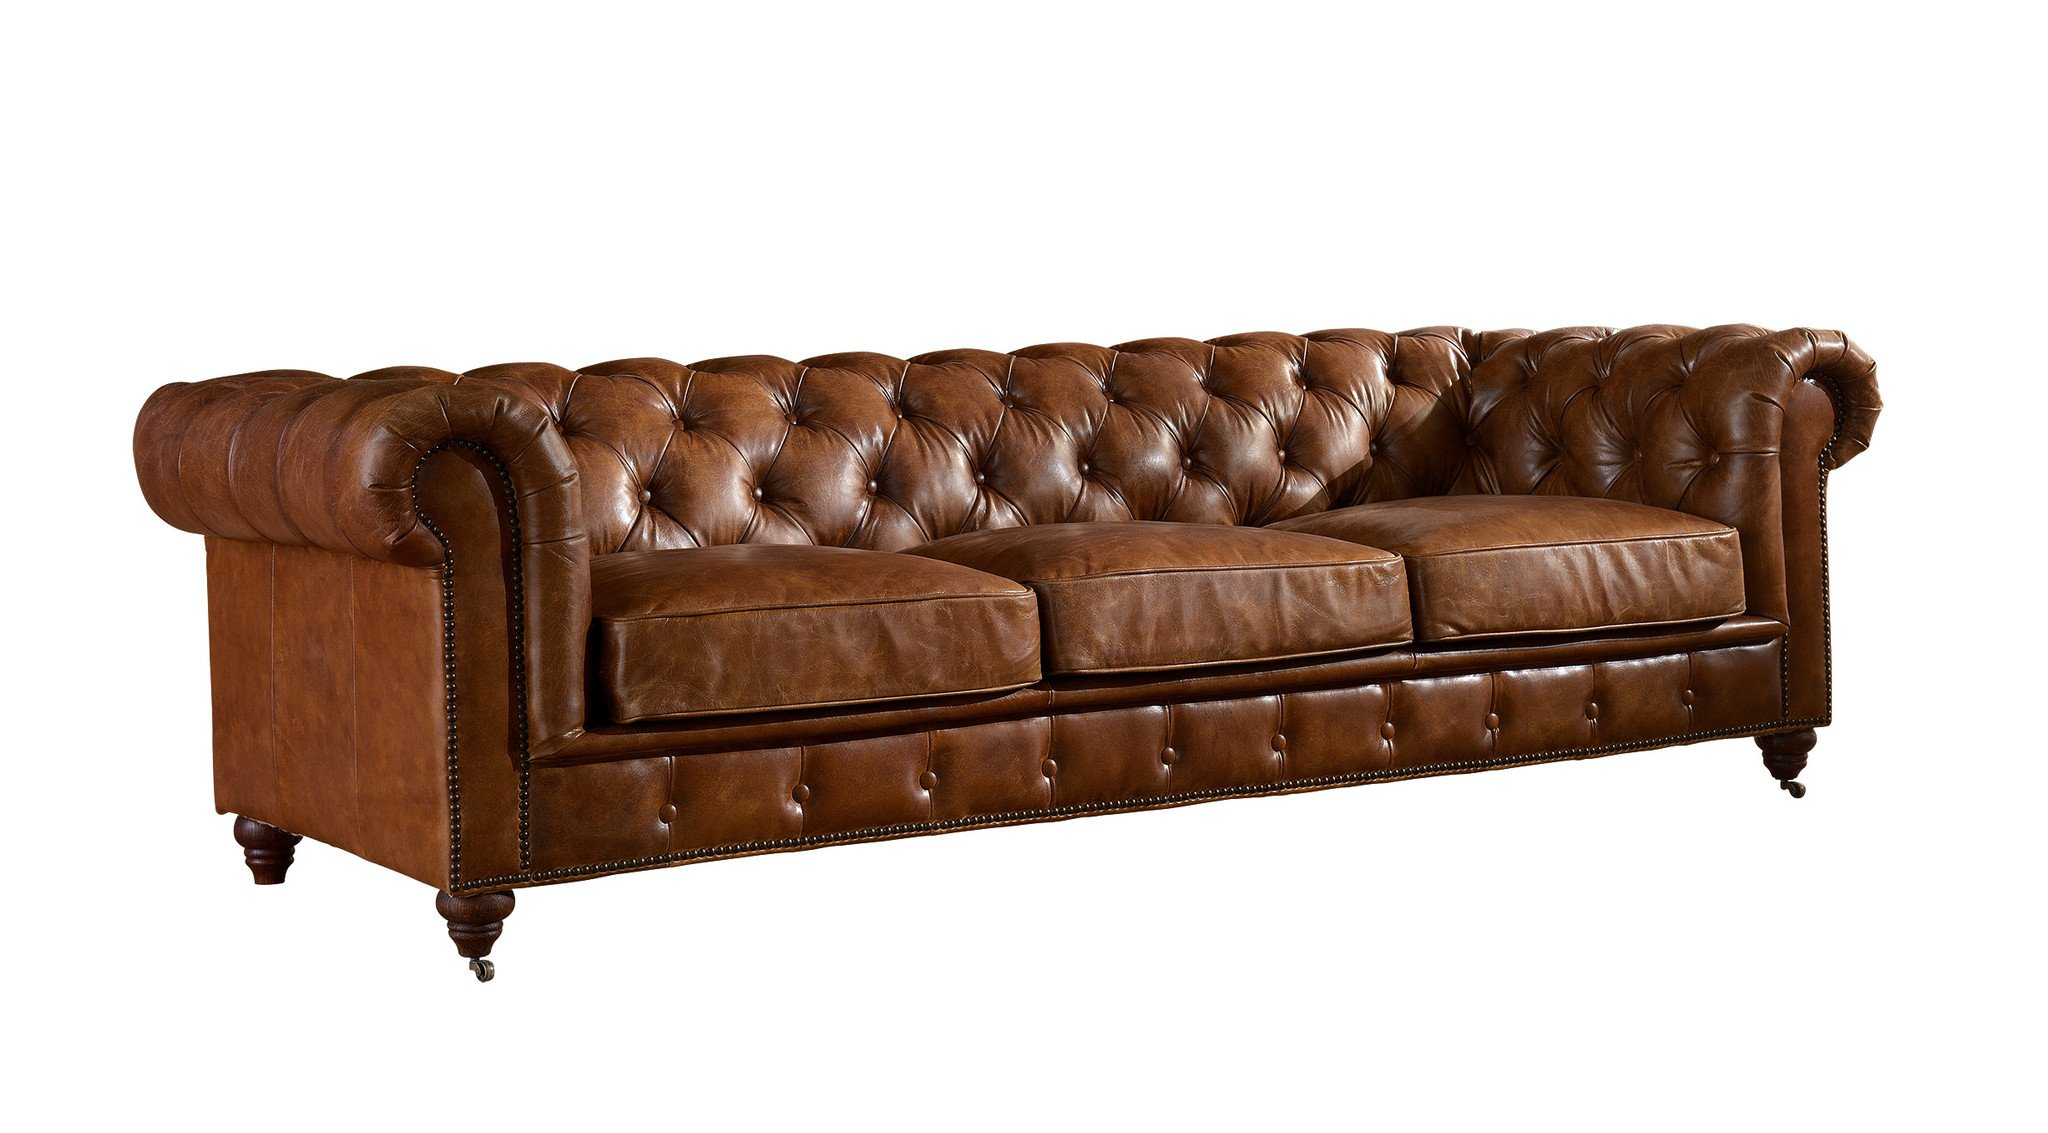 Leather Chesterfield Sofa   Light Brown Leather   118